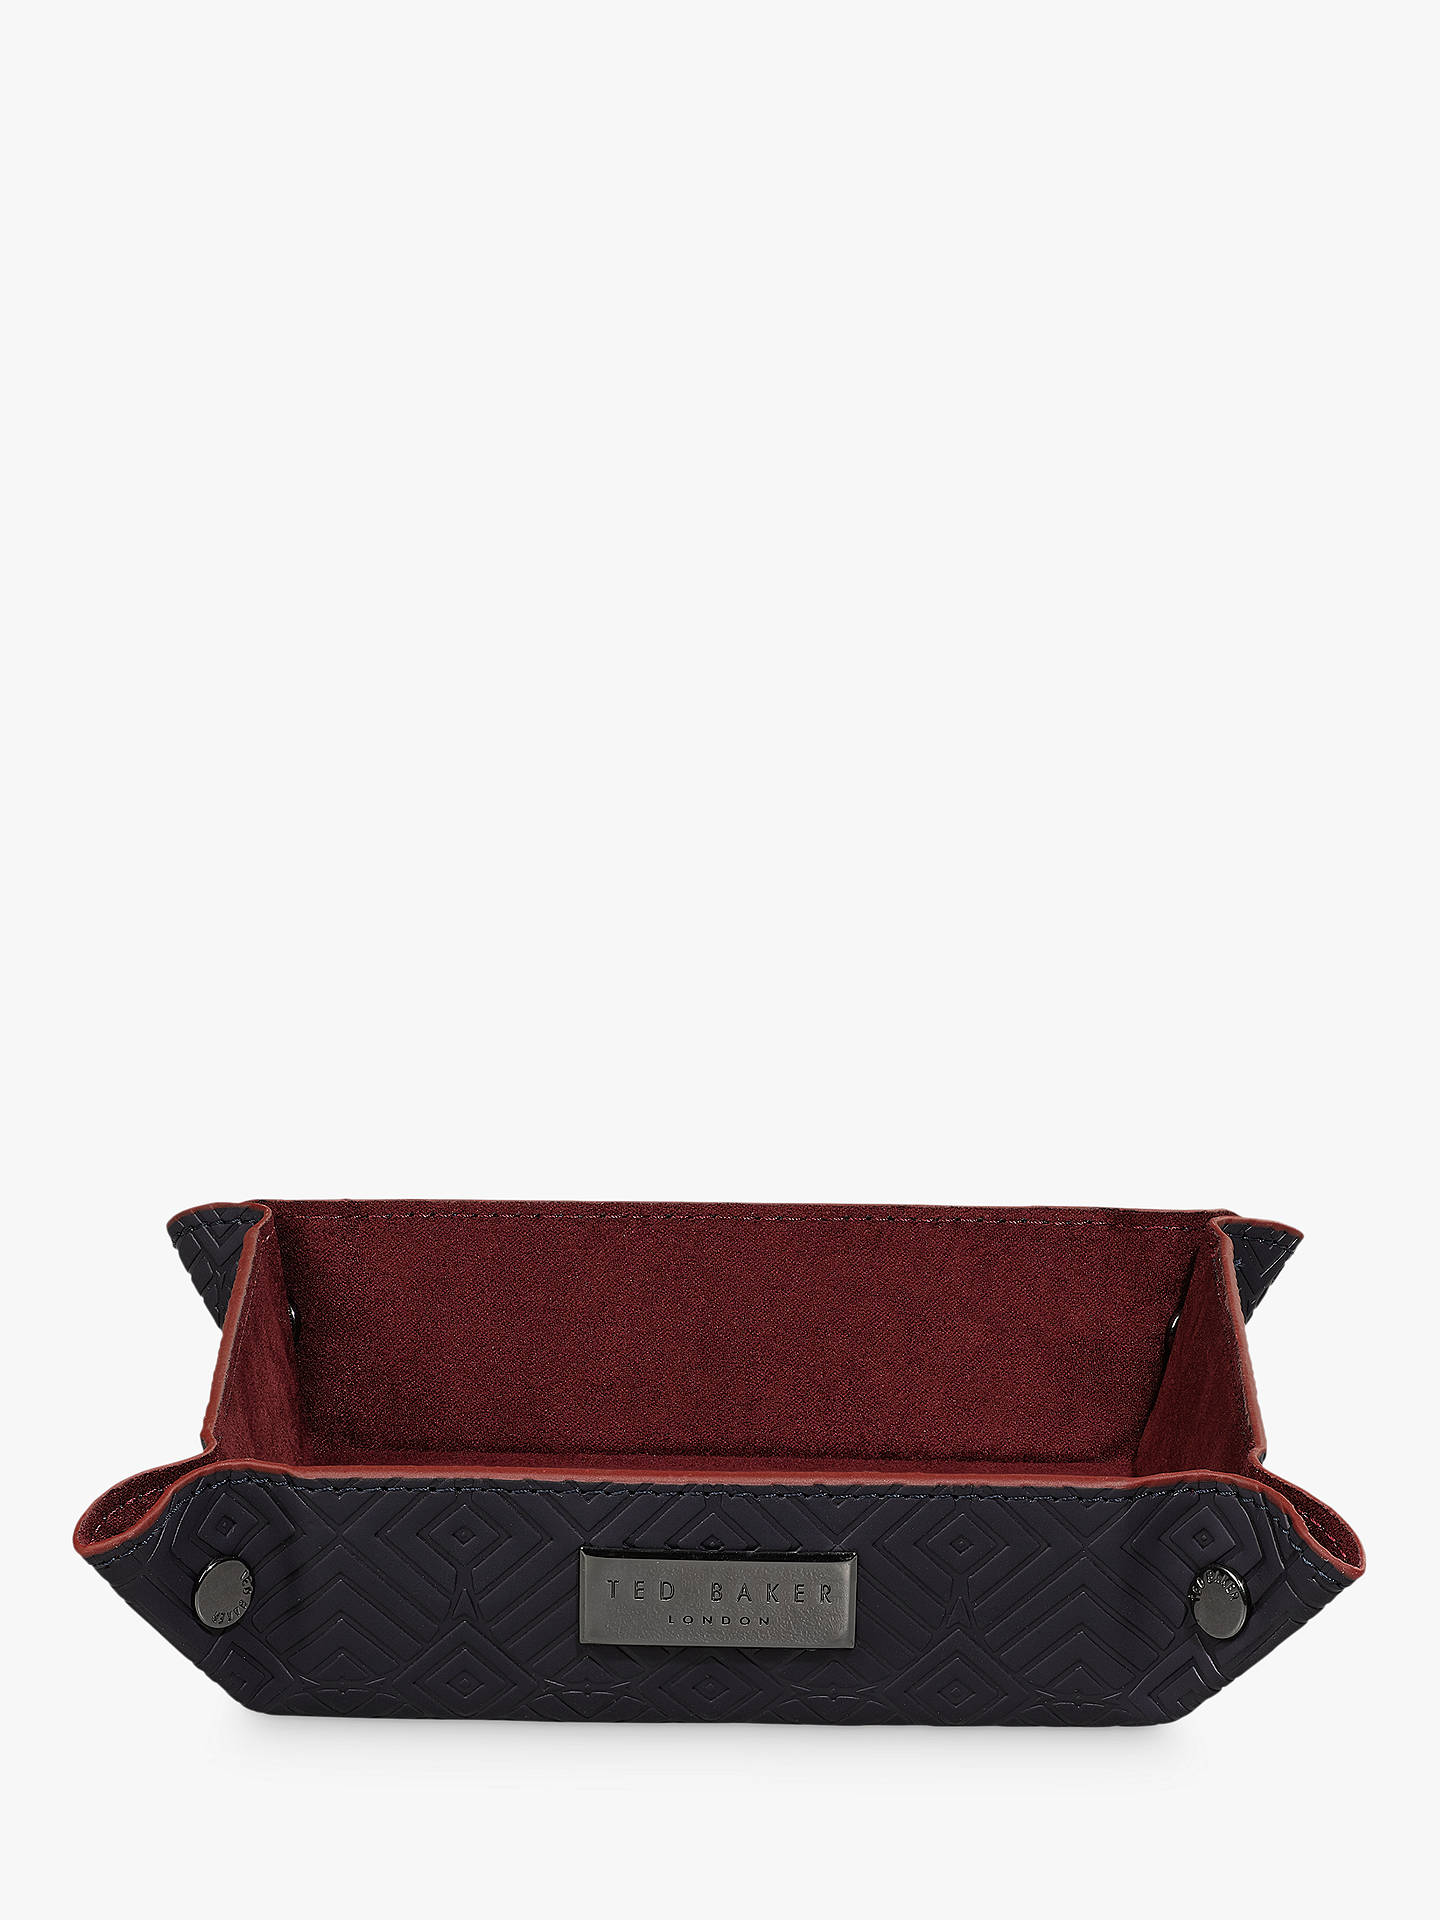 Buy Ted Baker Blue Accessory Tray Online at johnlewis.com